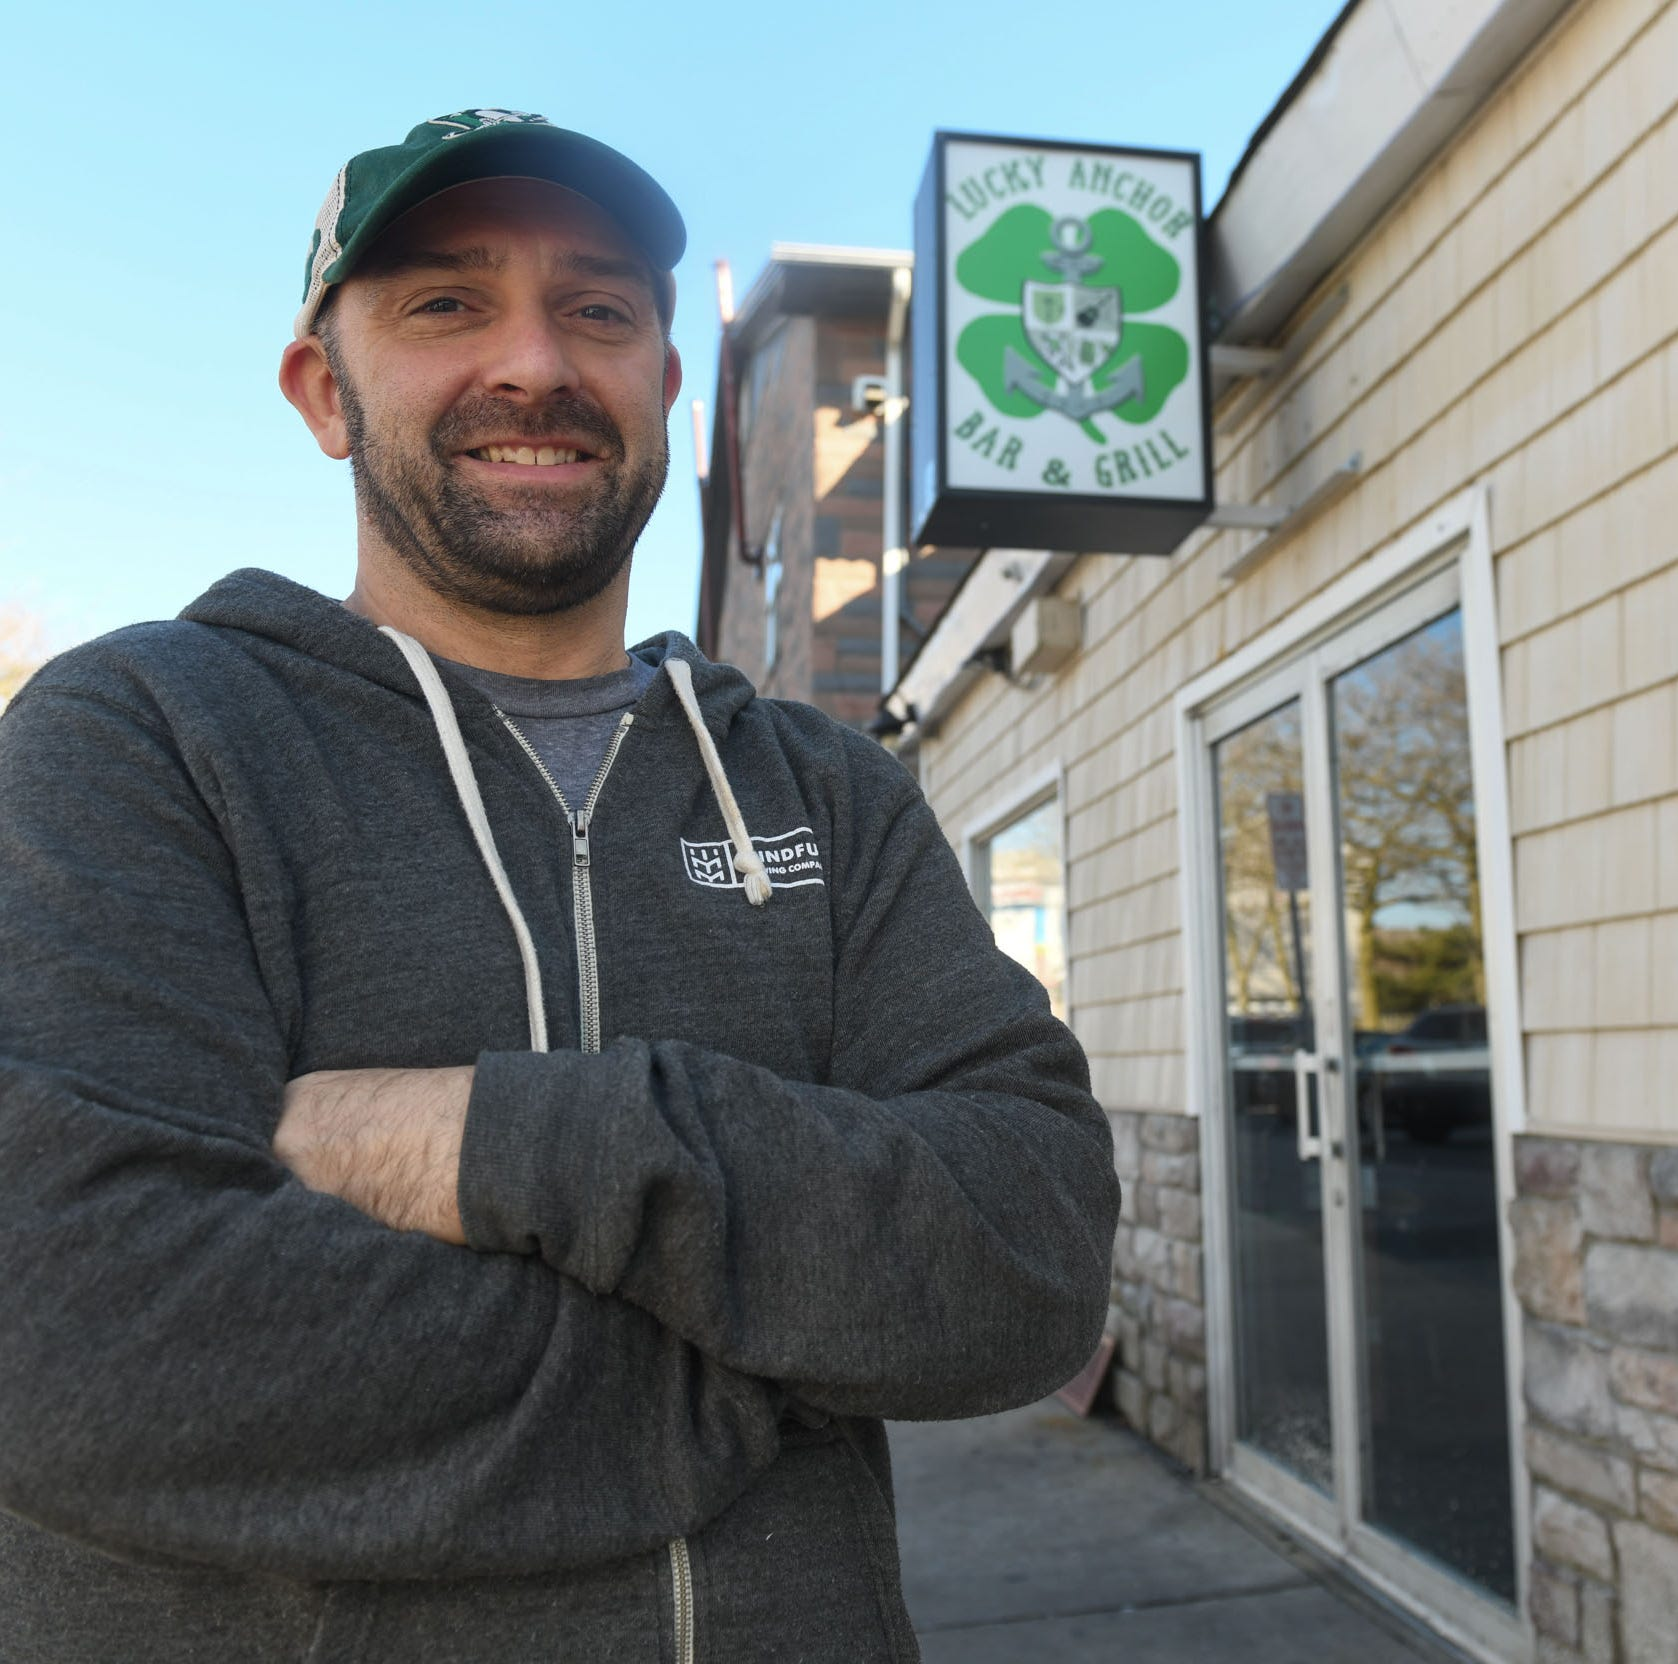 Ocean City gaining new beach bar with an 'Irish twist'